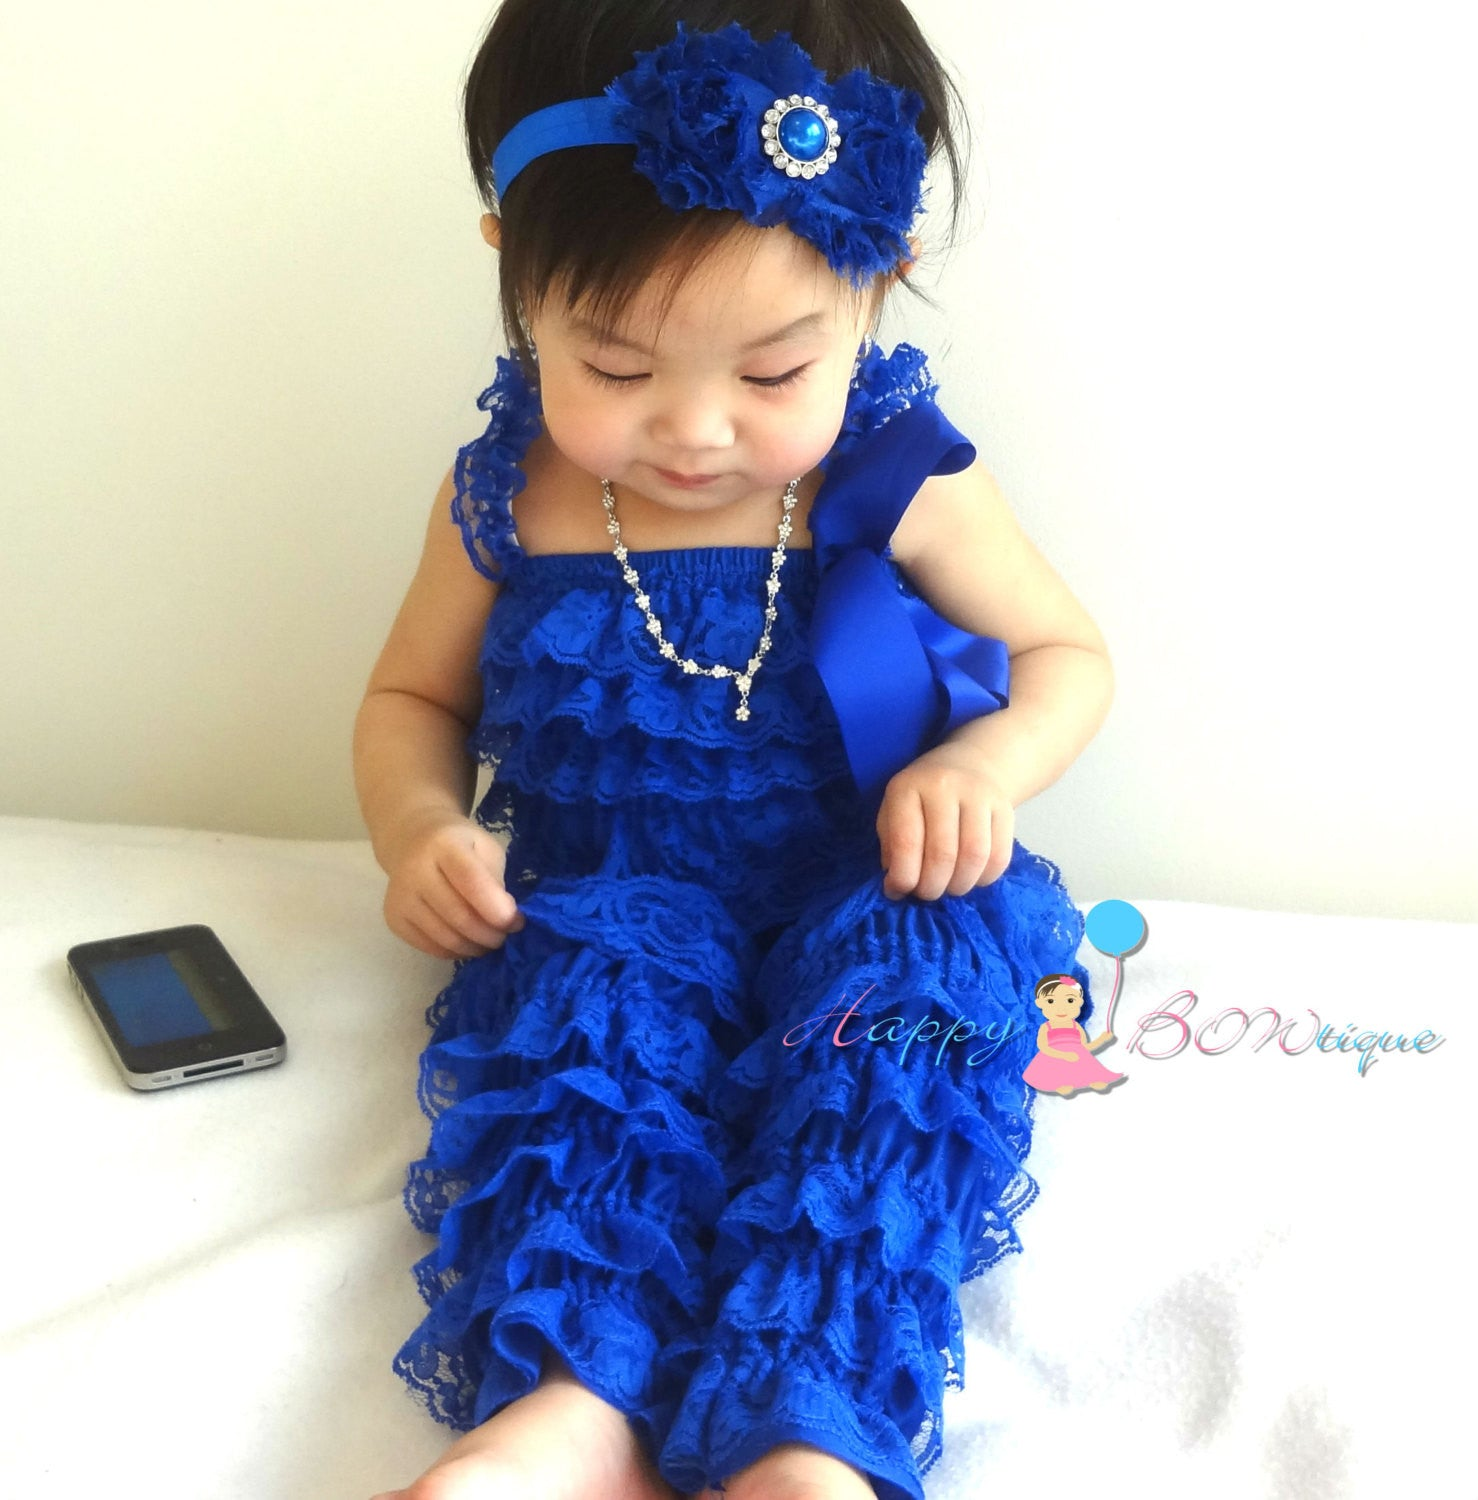 Royal Blue Lace Petti Romper +Legwarmers Set - Happy BOWtique - children's clothing, Baby Girl clothing